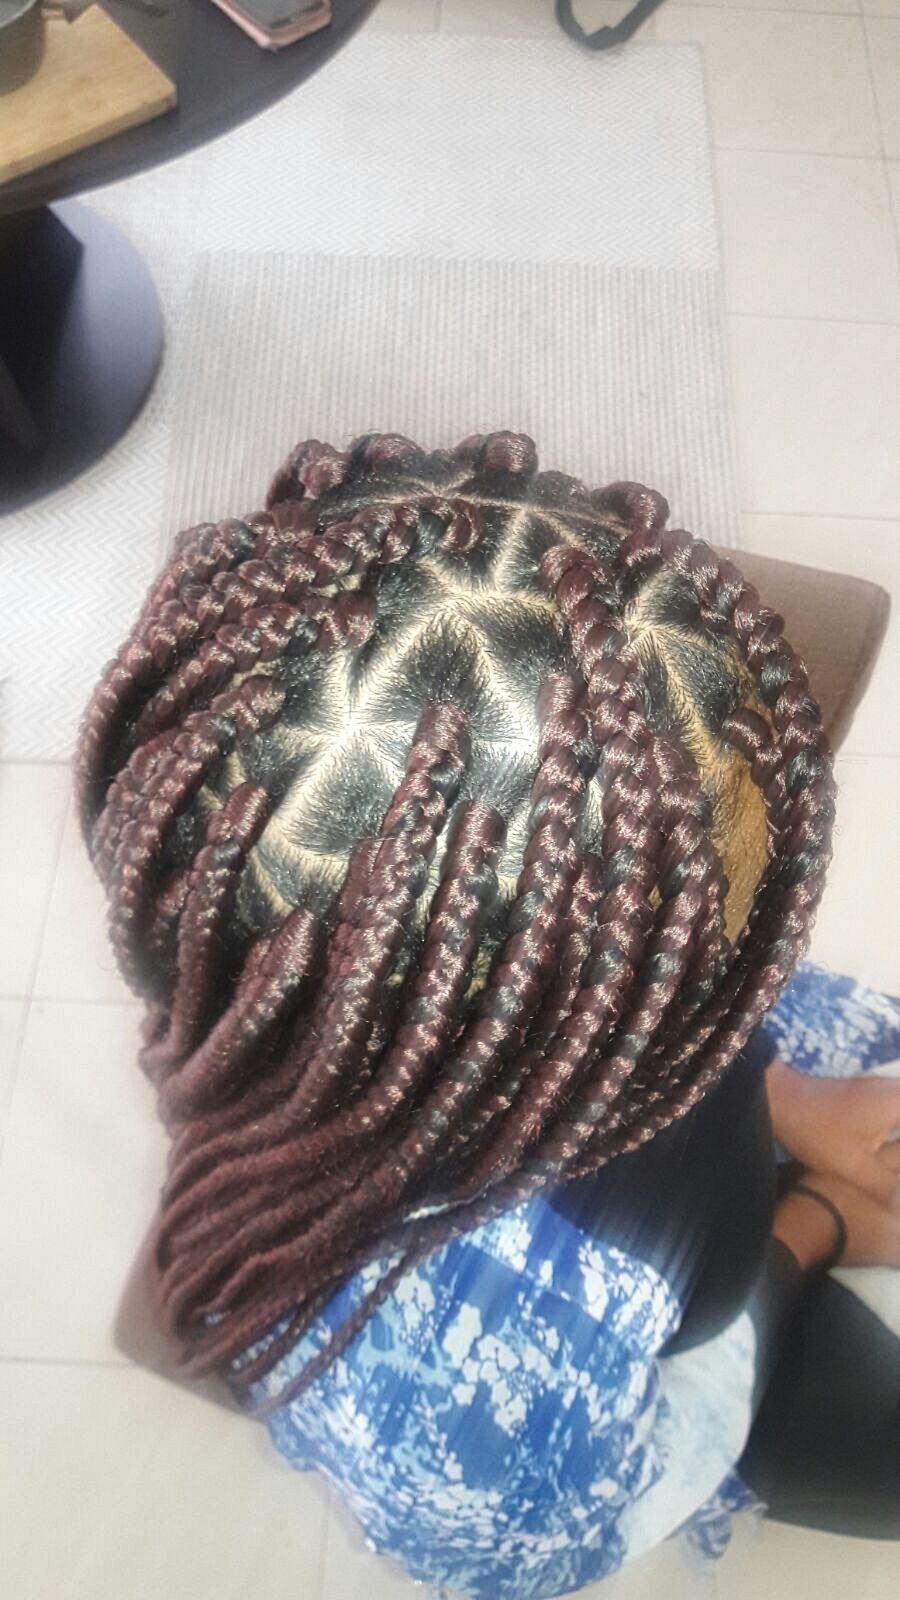 salon de coiffure afro tresse tresses box braids crochet braids vanilles tissages paris 75 77 78 91 92 93 94 95 GGZMOUHN